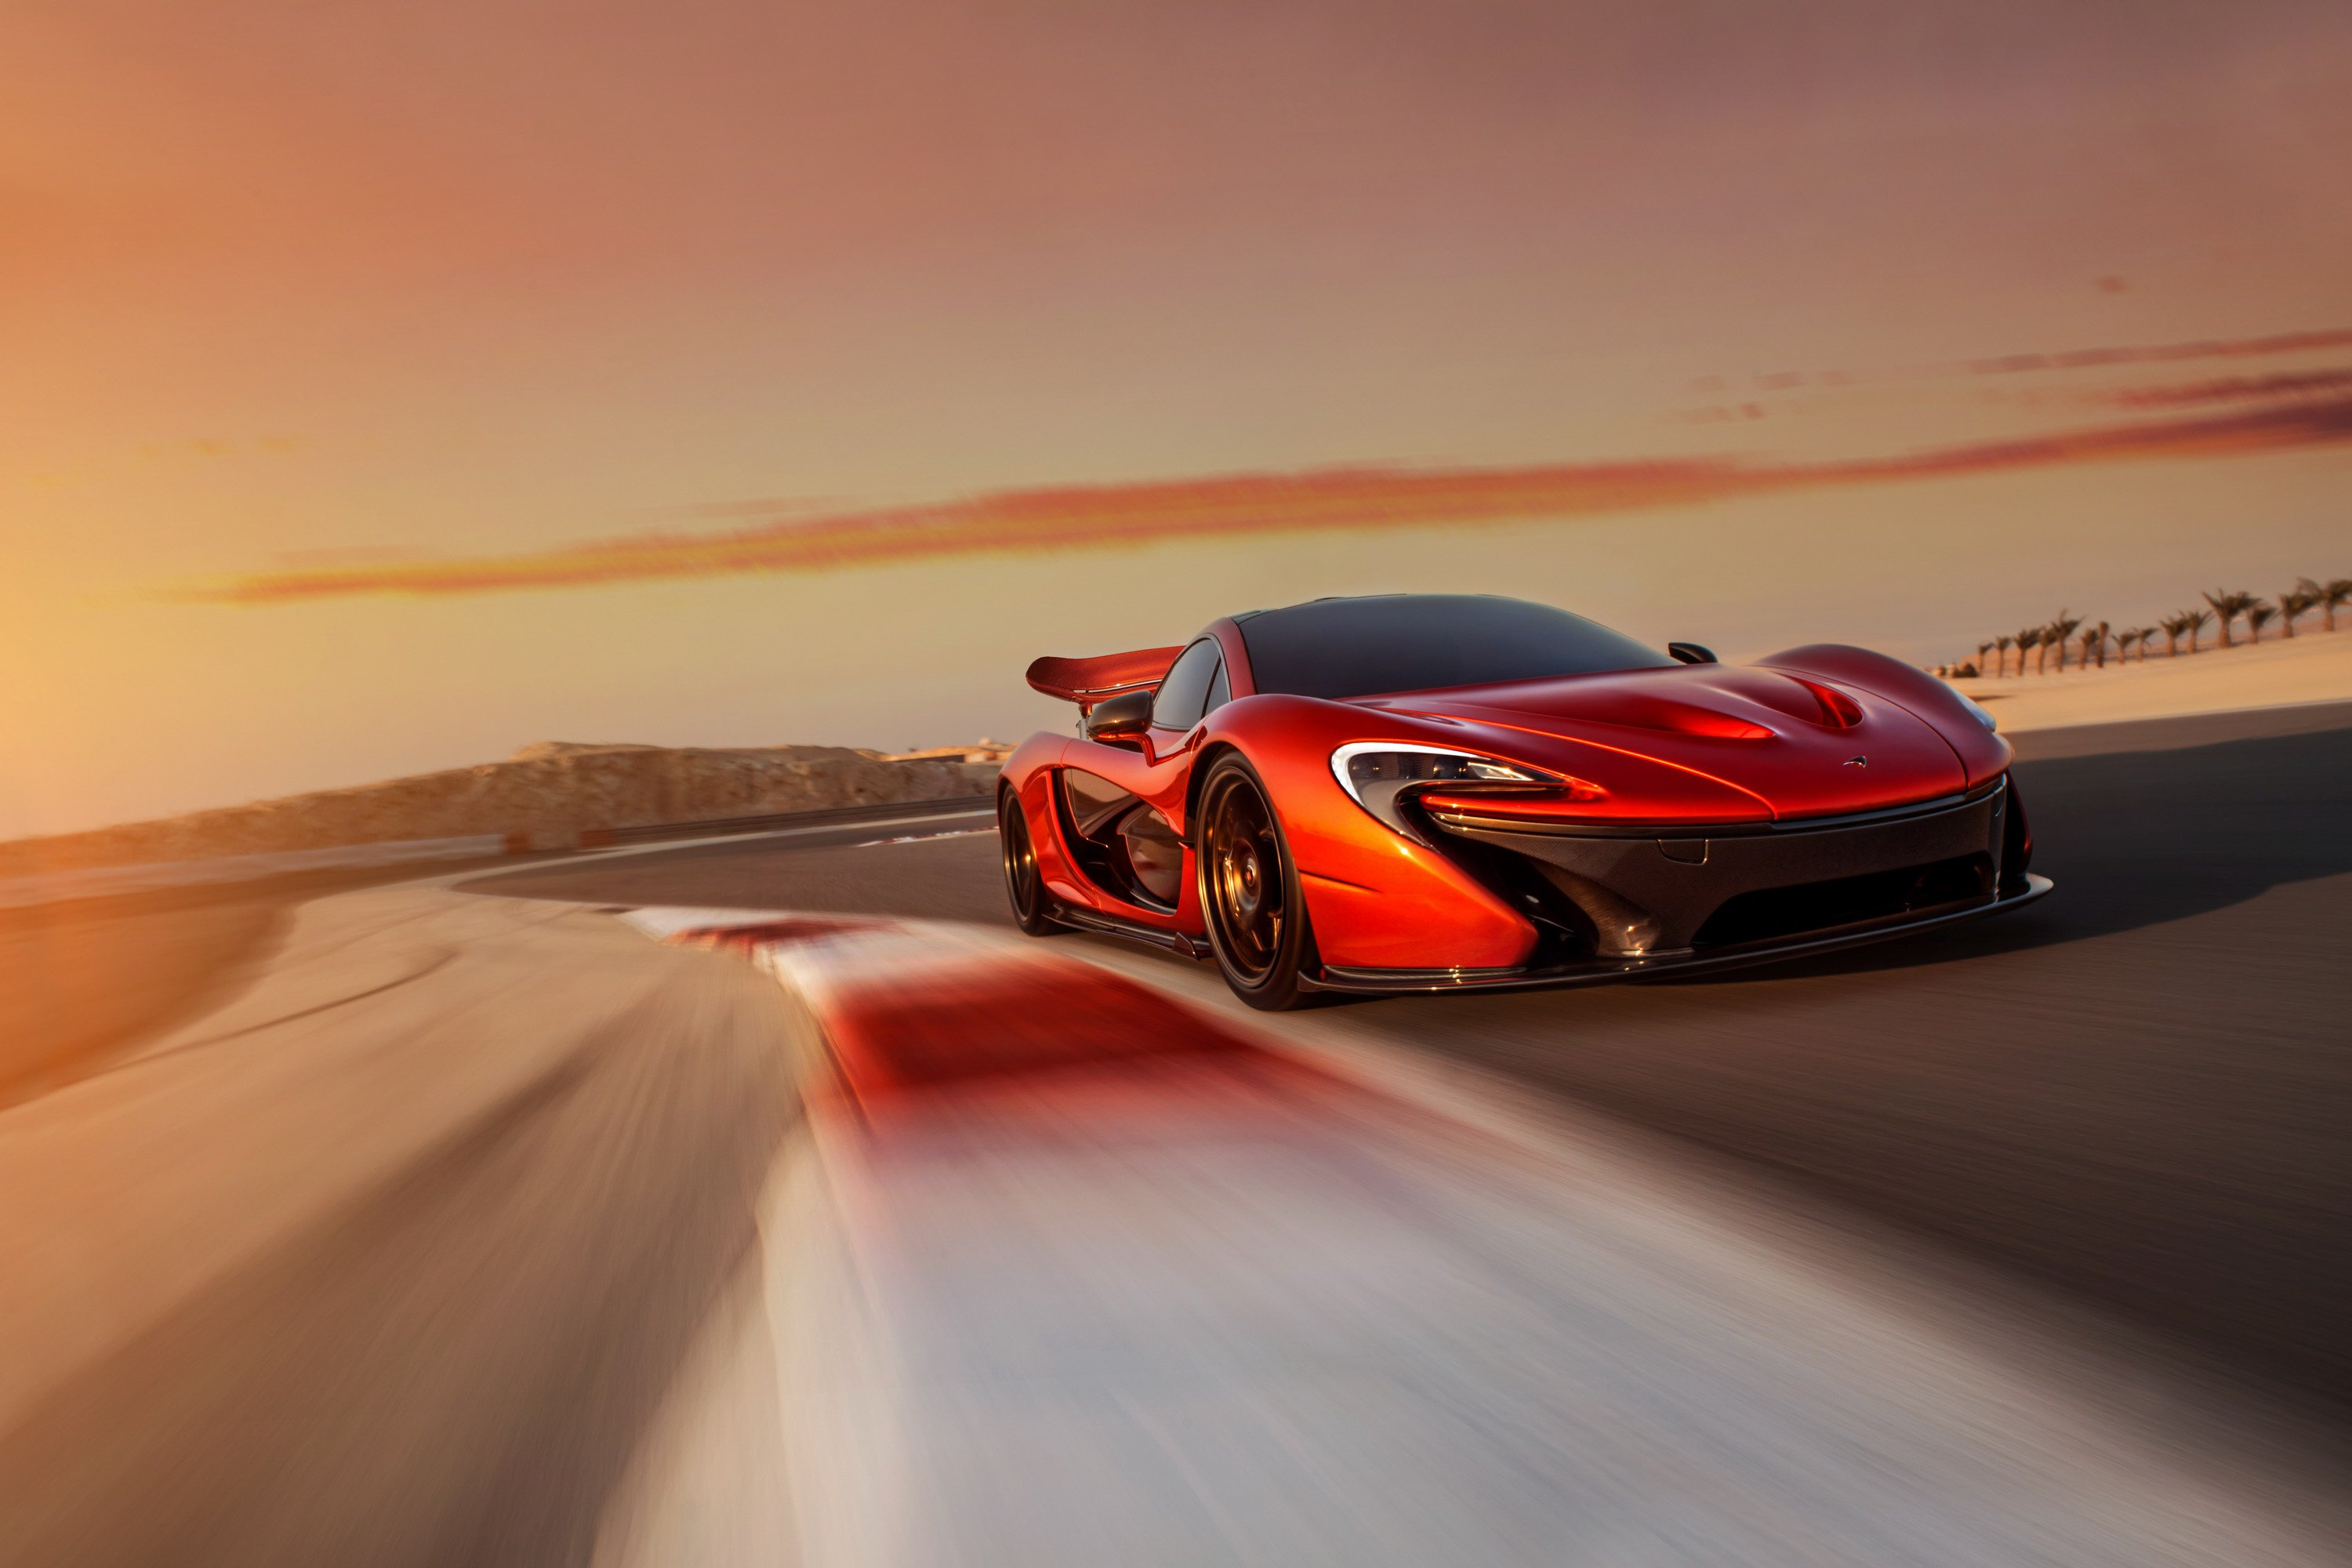 Red Mclaren P1 Hd Cars 4k Wallpapers Images Backgrounds Photos And Pictures